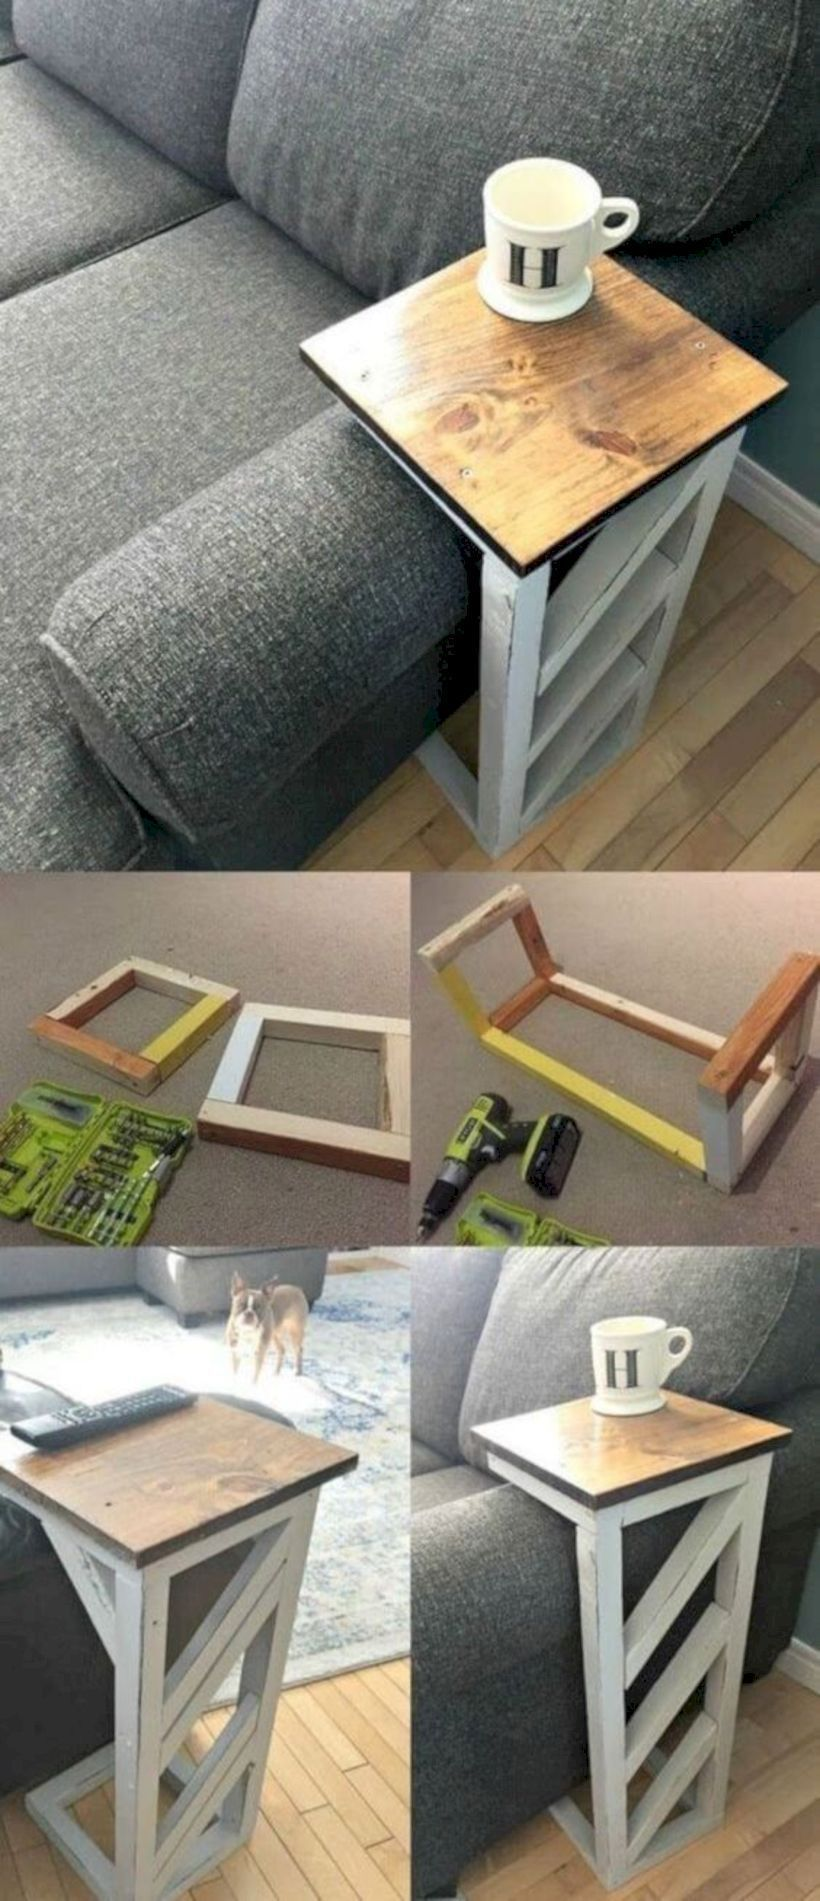 remarkable projects and ideas to improve your home decor